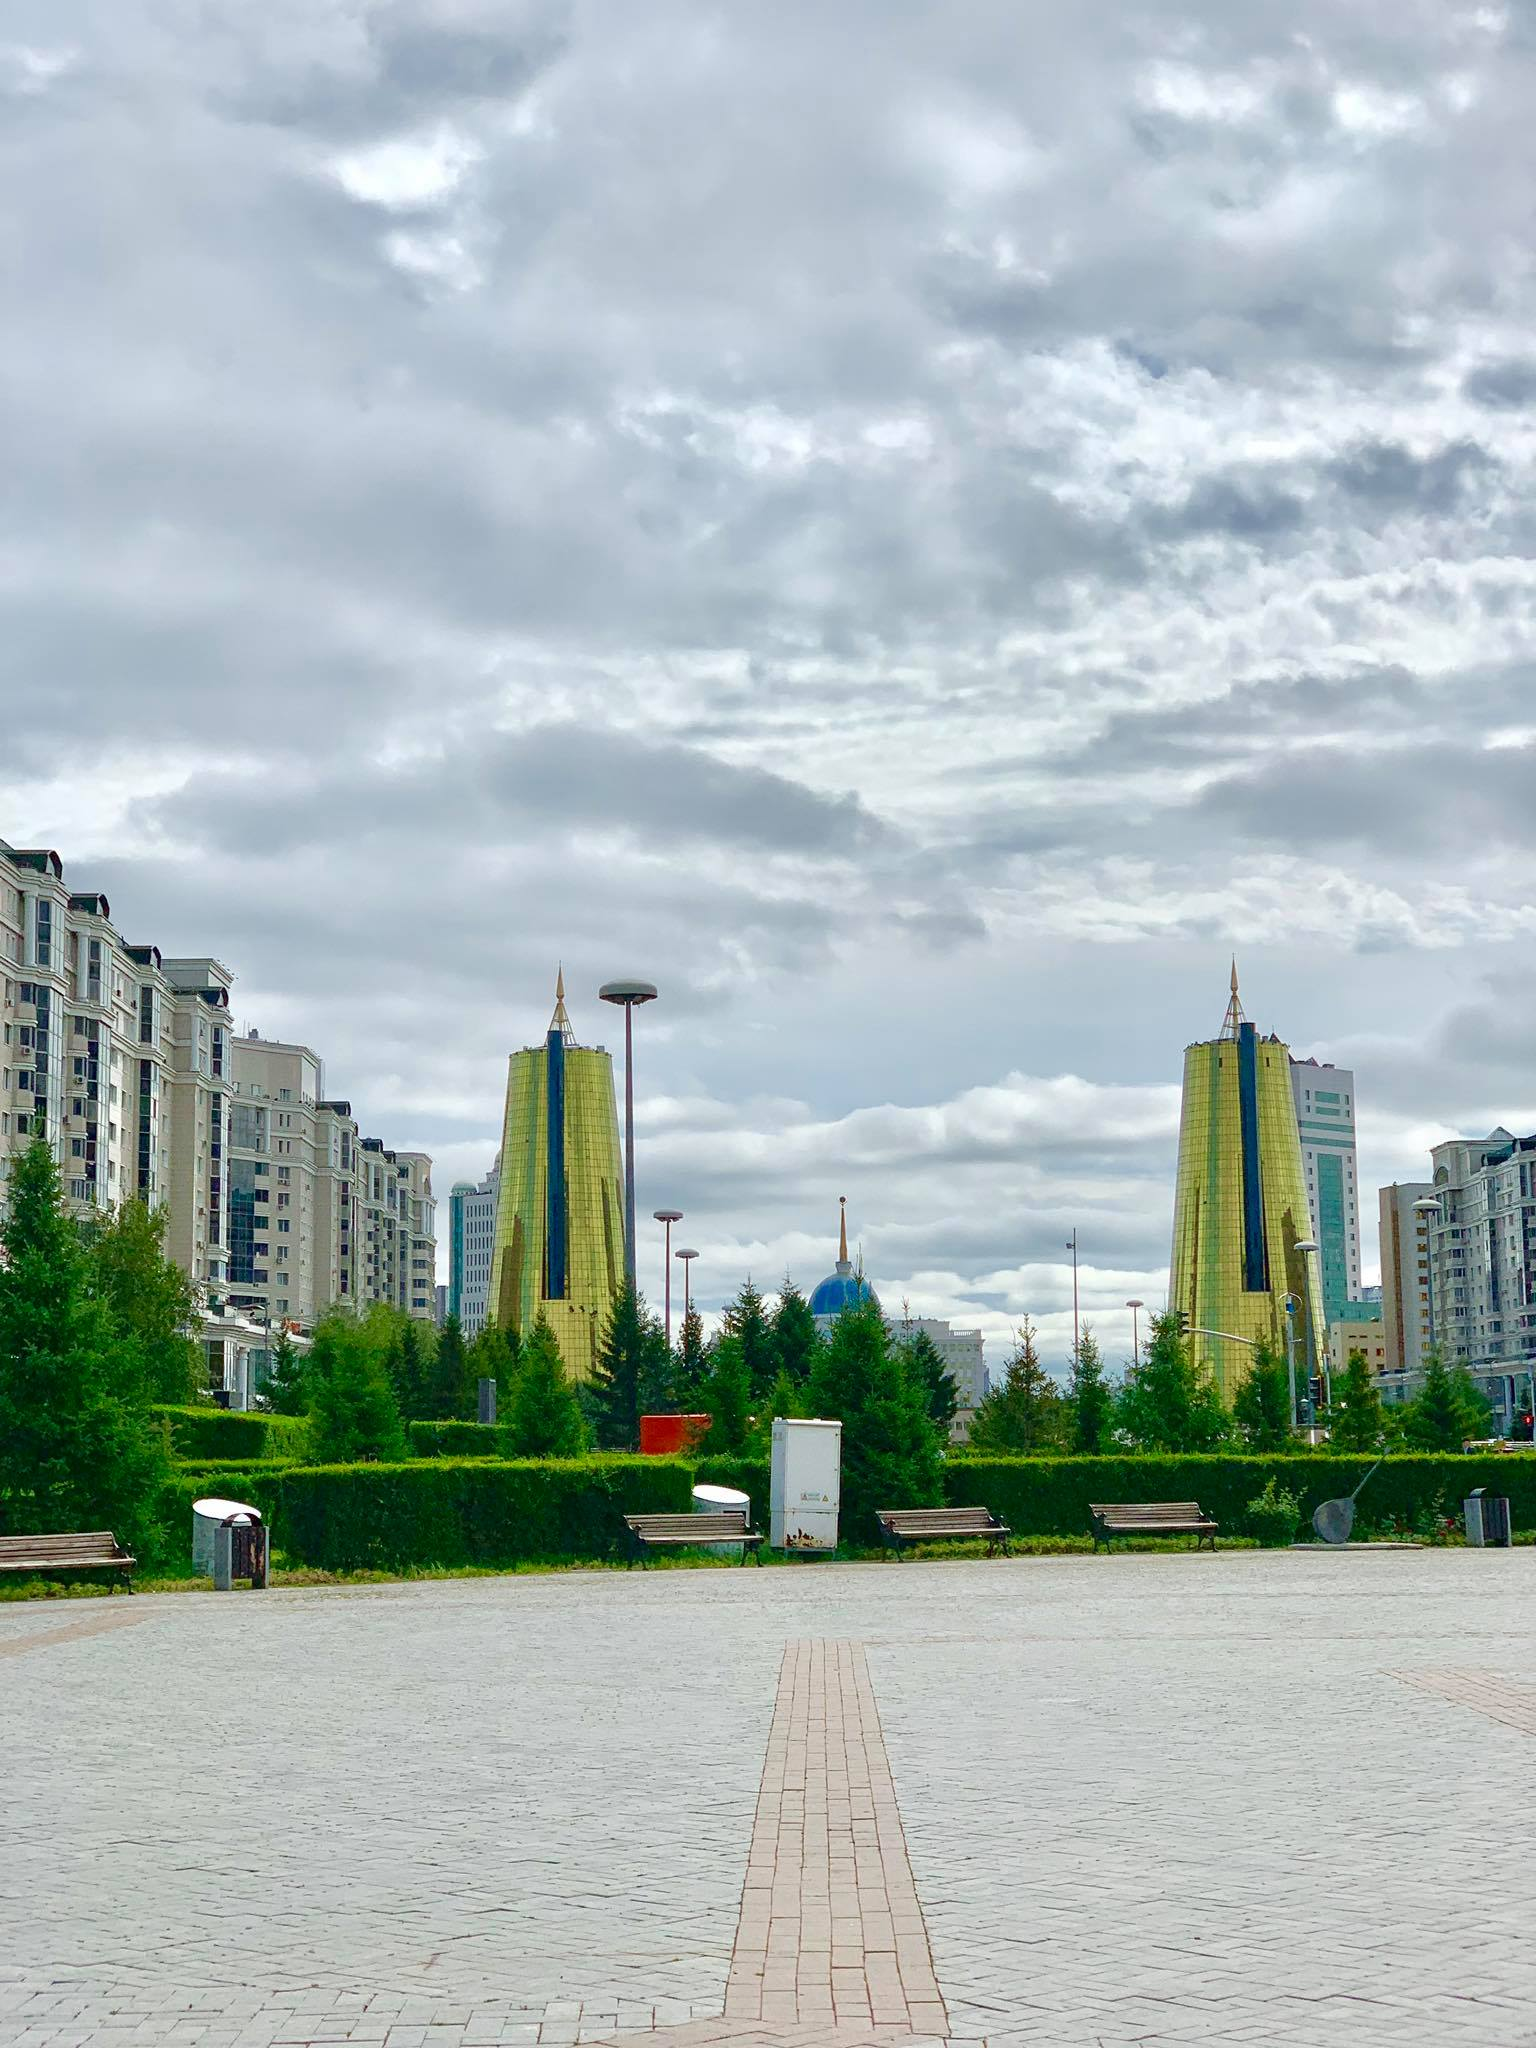 Kach Solo Travels in 2019 Nursultan  Astana - the City of the Future30.jpg